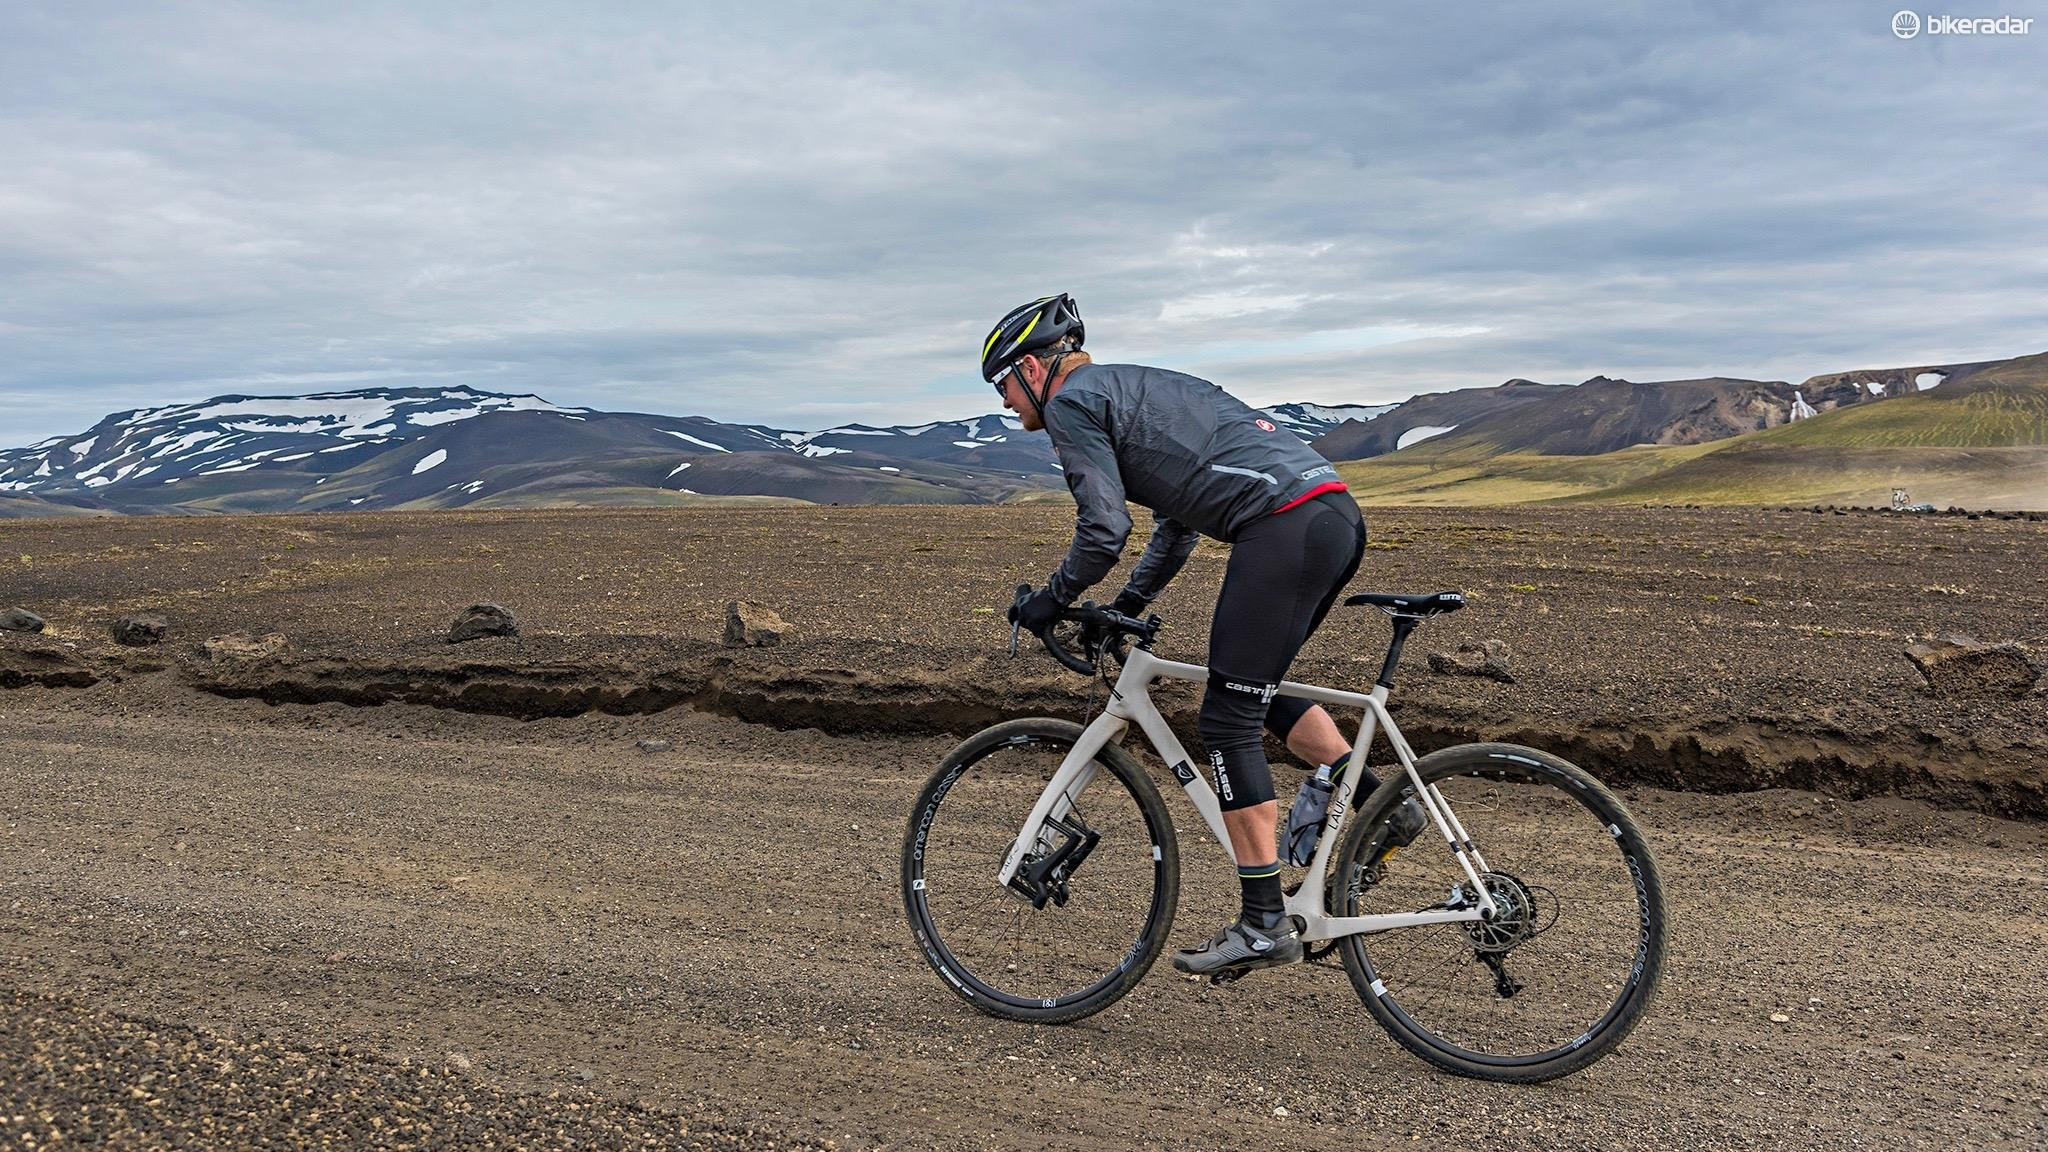 A handful of journalists, bikes and some epic scenery — Lauf says this is the perfect way to understand its products